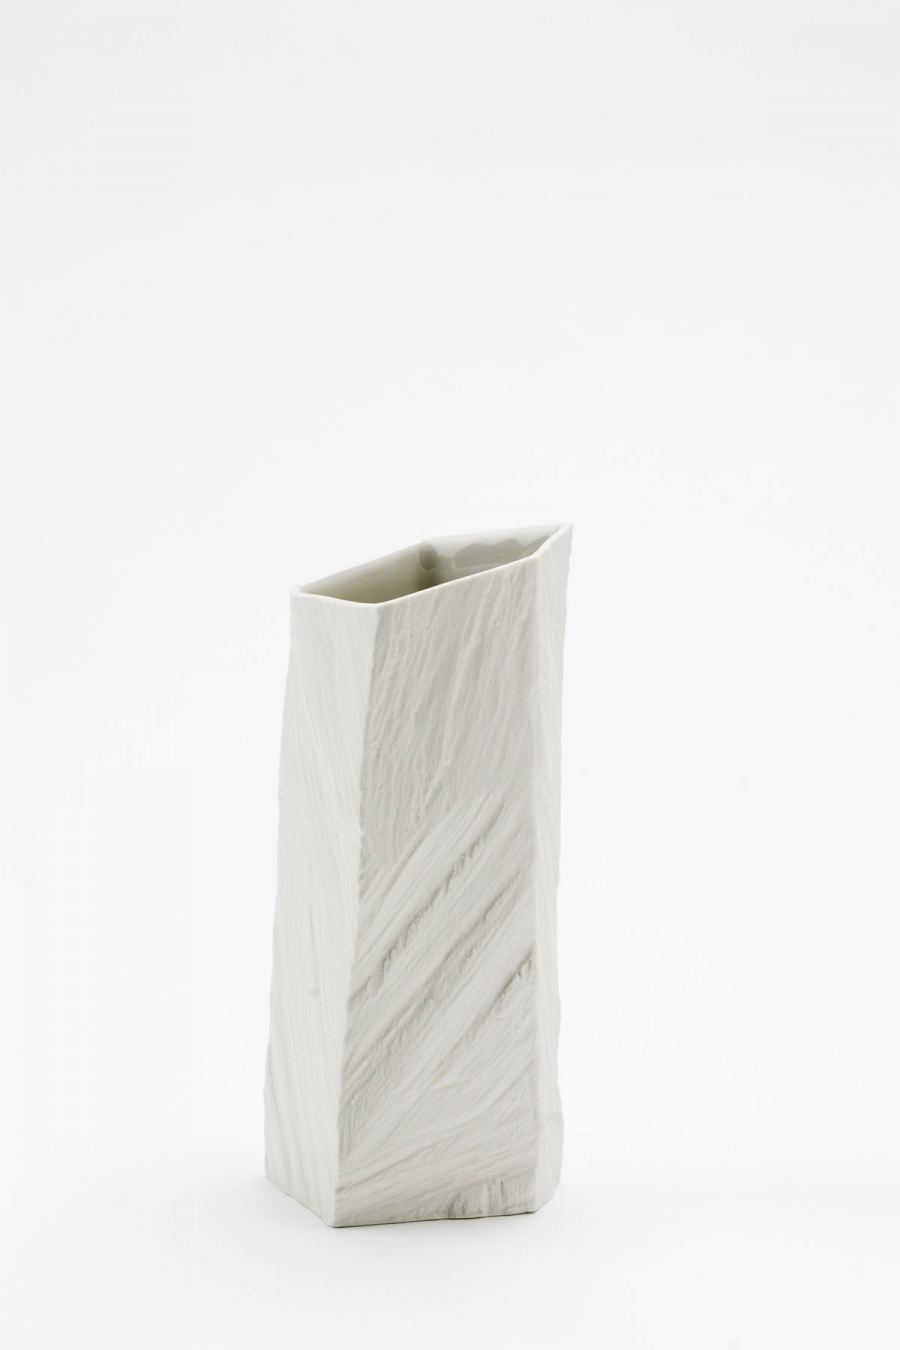 Vase S white raw Woodraw